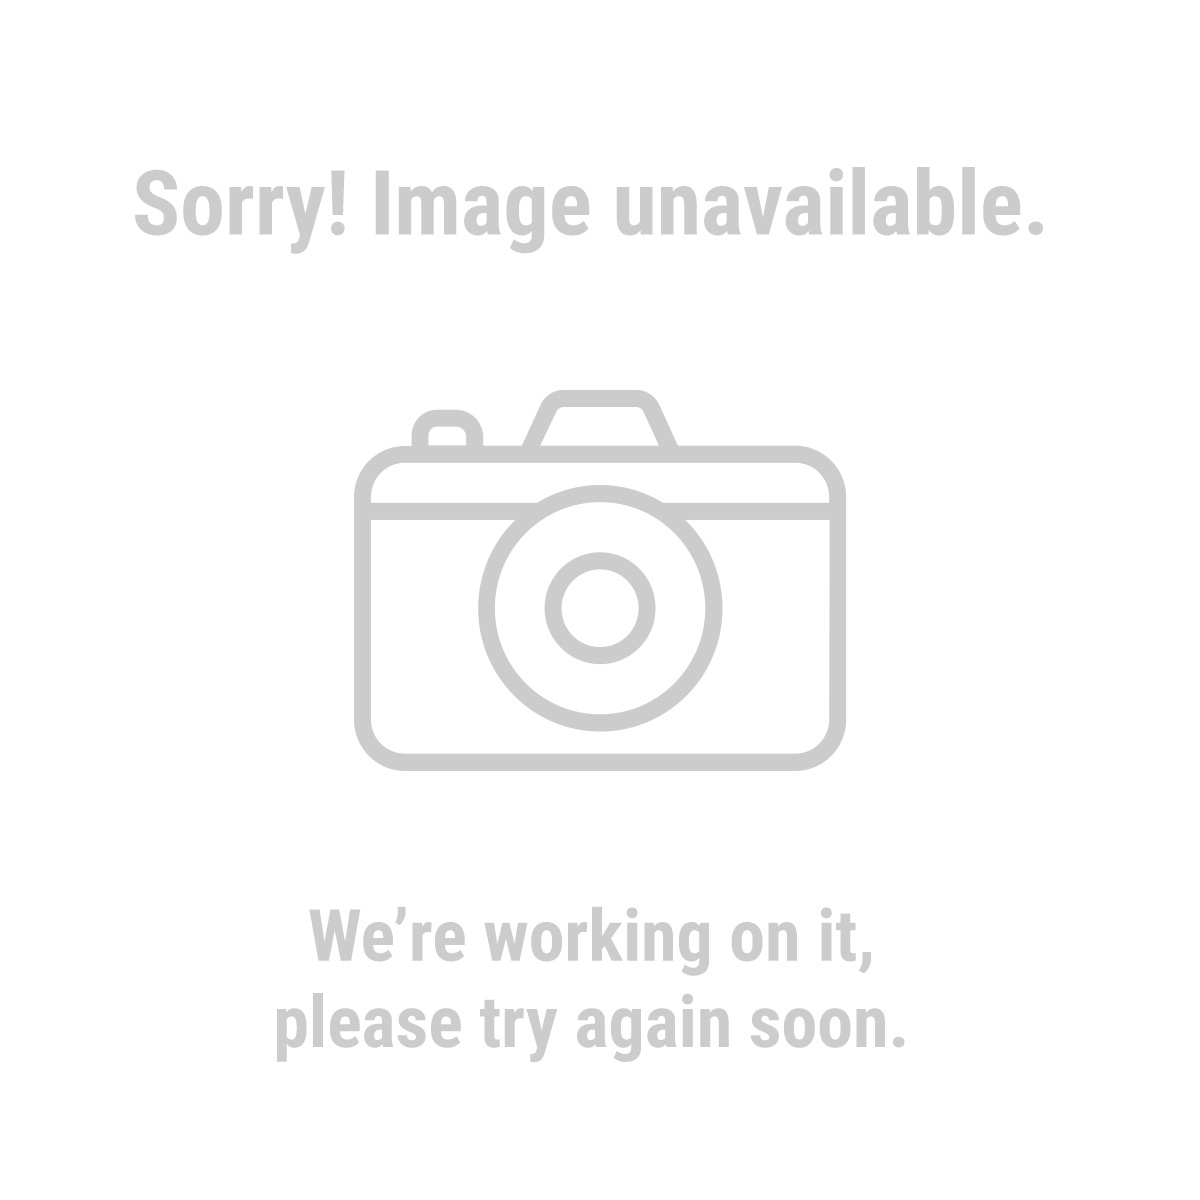 Western Safety 46992 6 Pairs Knit Gloves